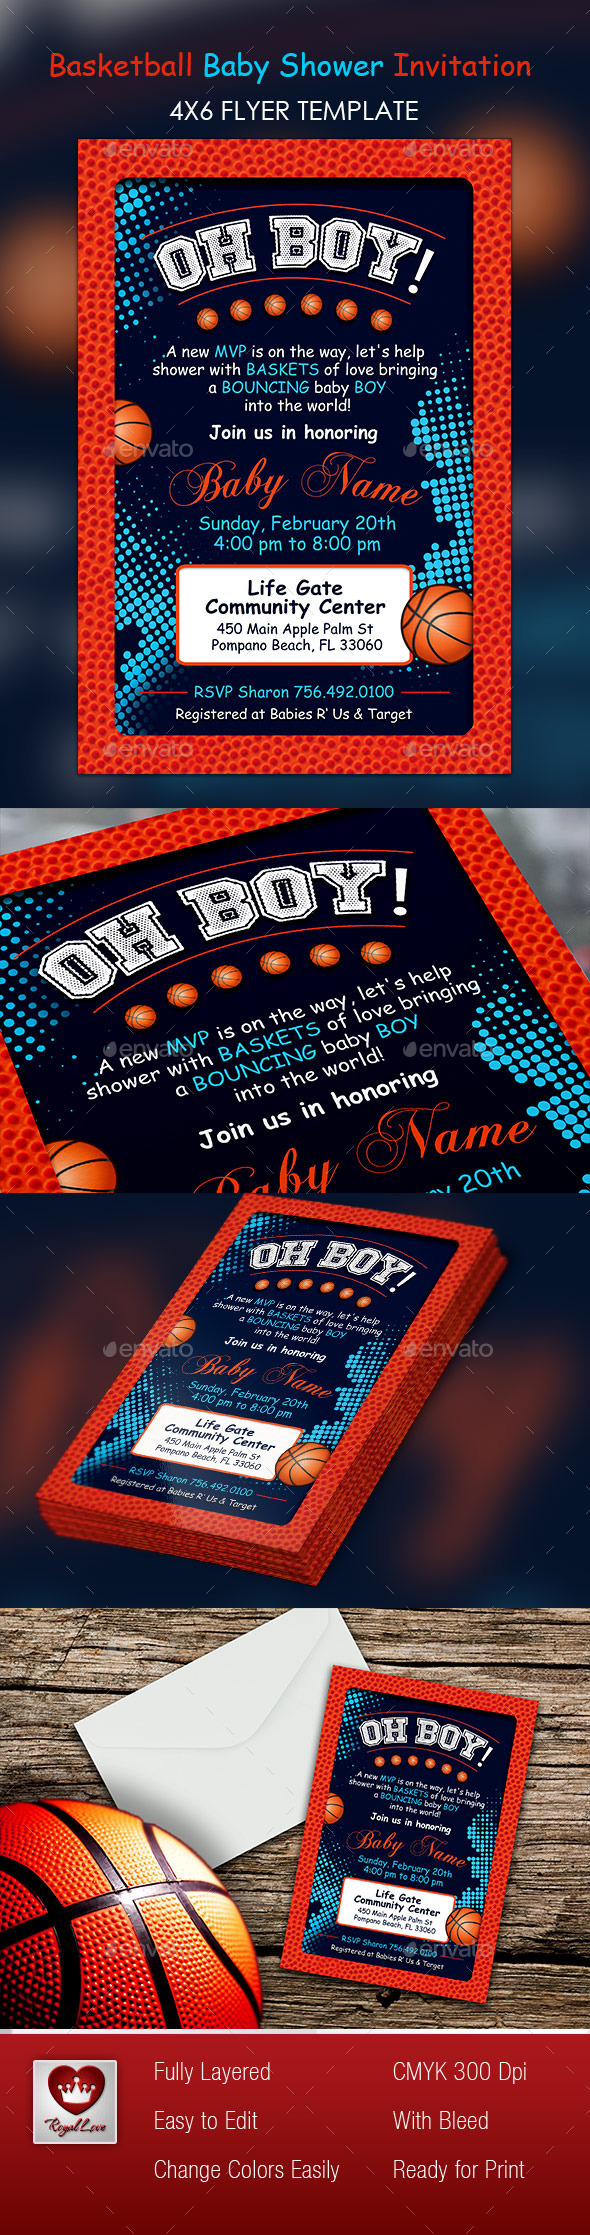 Raffle Ticket Graphics, Designs & Templates from GraphicRiver